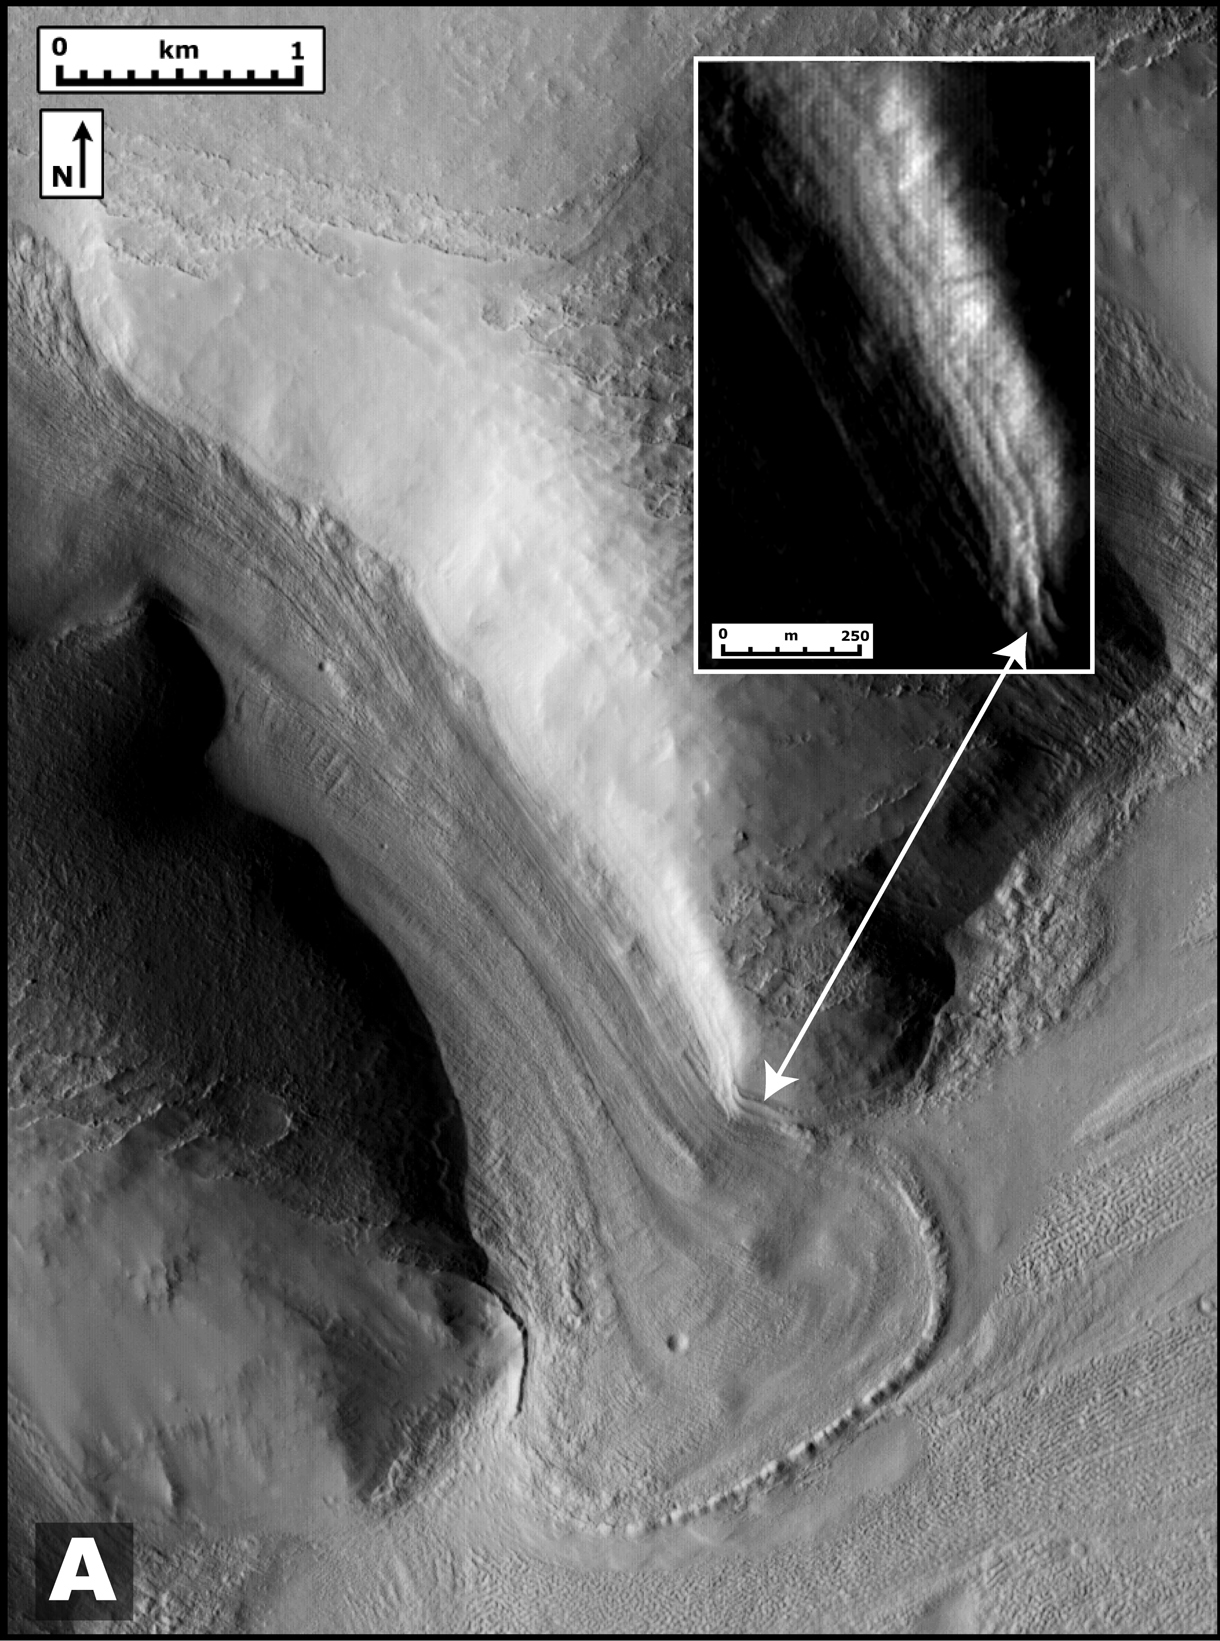 Ancient Martian Tributary: This image taken taken by the Mars Reconnaissance Orbiter shows a glacier-like lobe that had spilled from an ancient tributary on to the surrounding plain. Brown scientists report in May's issue of Geology that the lobe is superimposed on a past ice deposit and appears to be evidence of more recent glaciation.